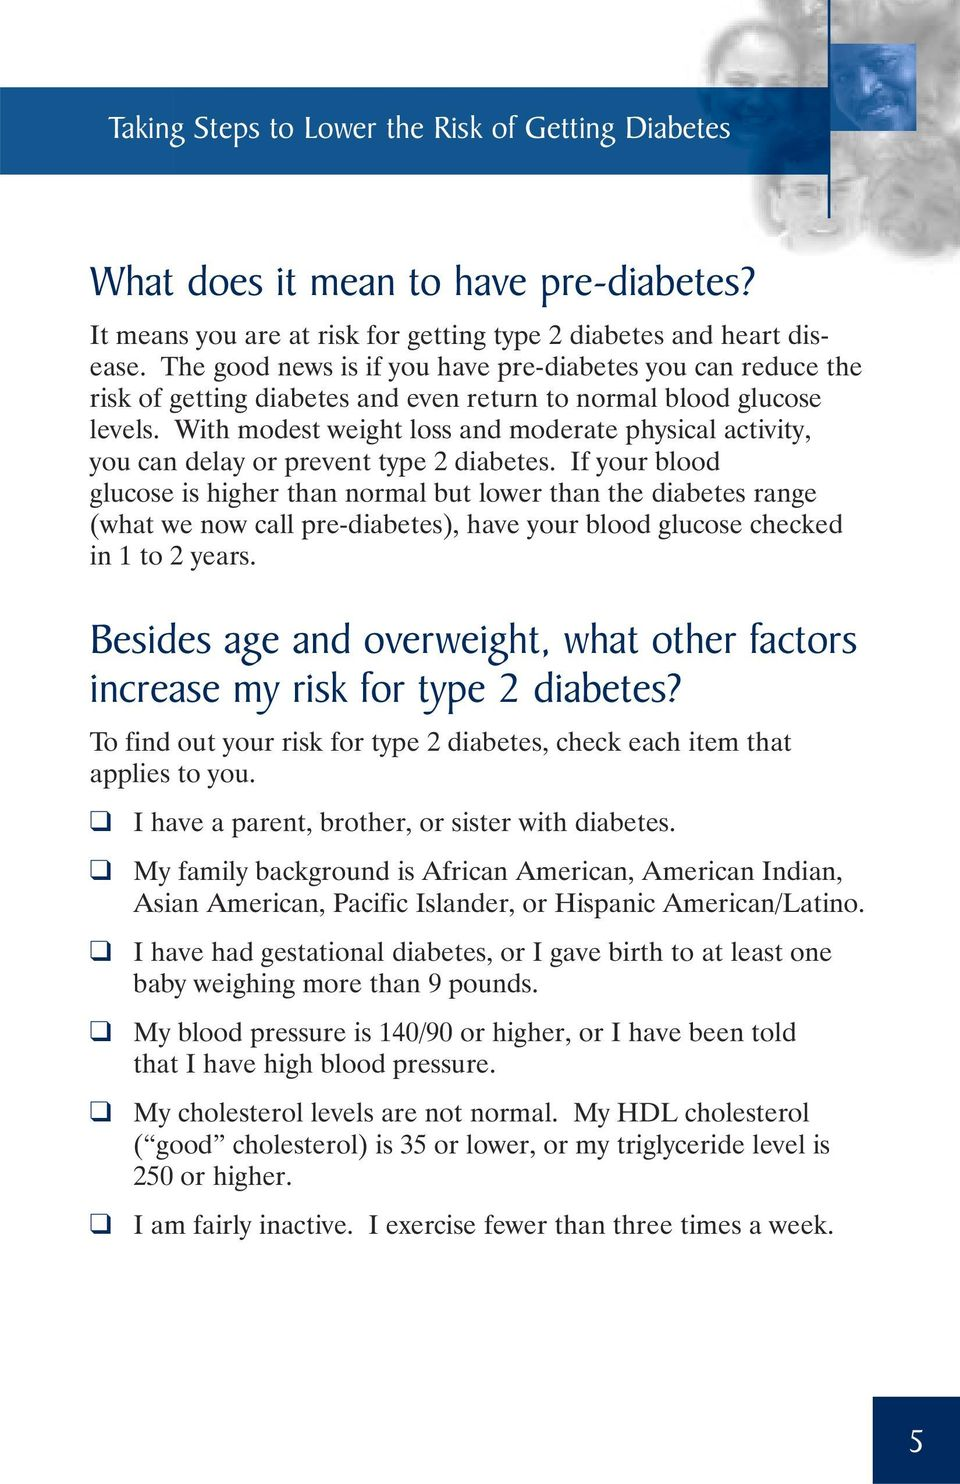 With modest weight loss and moderate physical activity, you can delay or prevent type 2 diabetes.